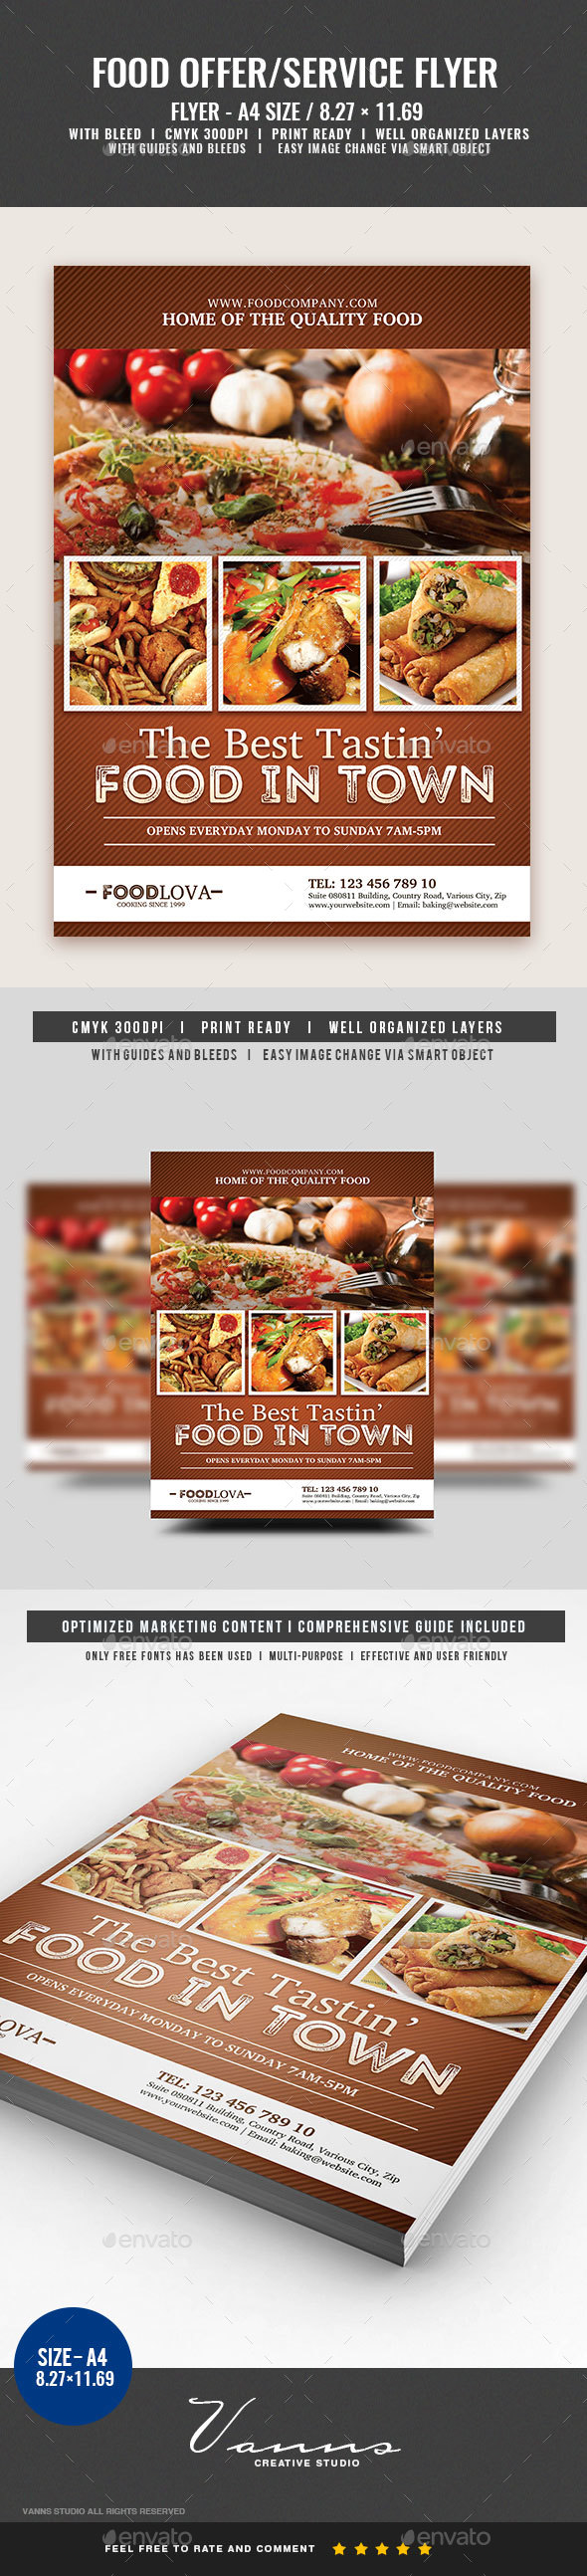 Food Services Flyer Template - Restaurant Flyers